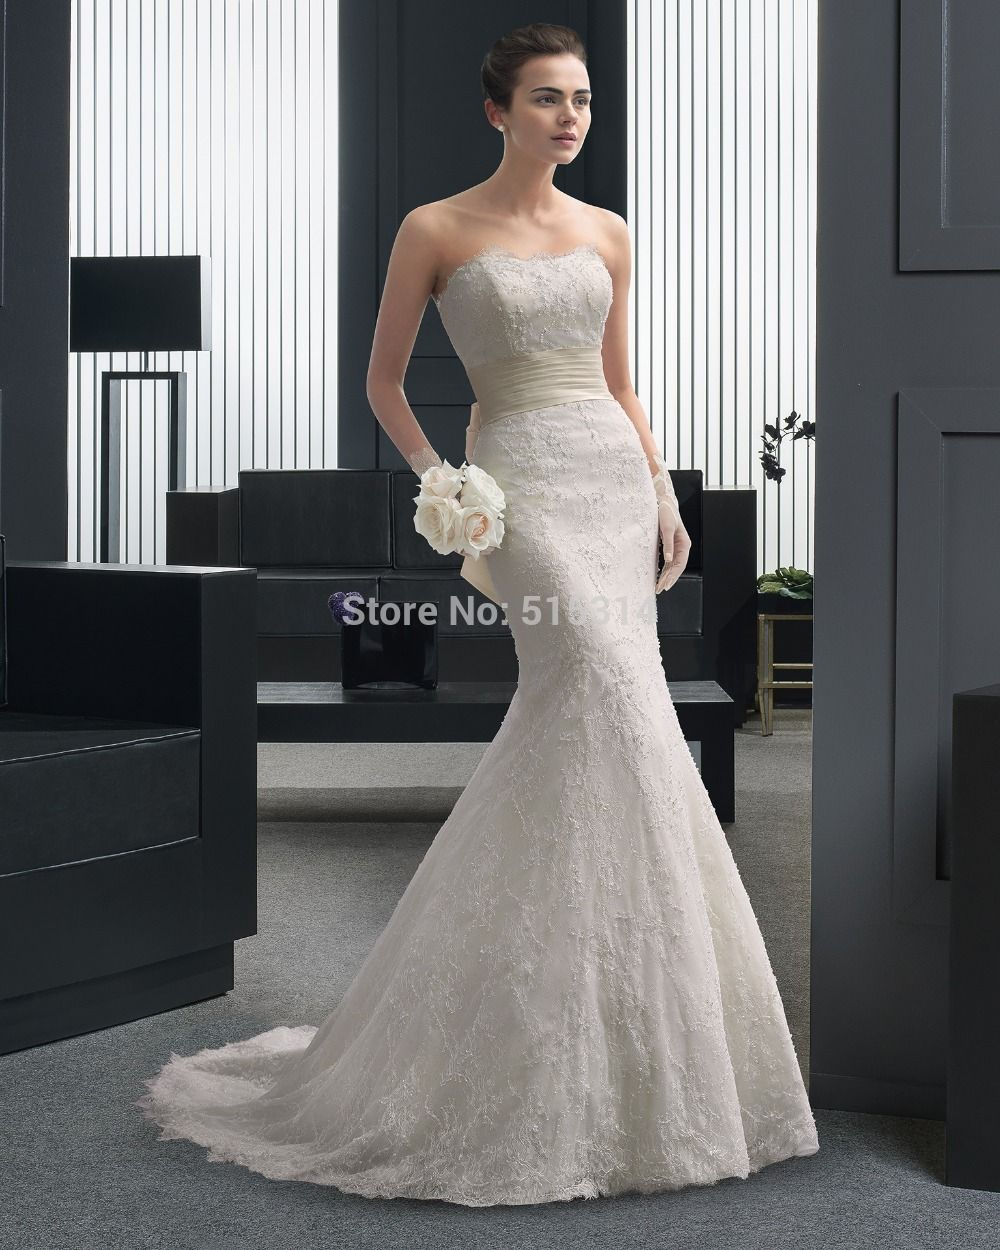 Wedding dresses for broad shoulders  Cheap dresses for broad shoulders Buy Quality dress symbolism